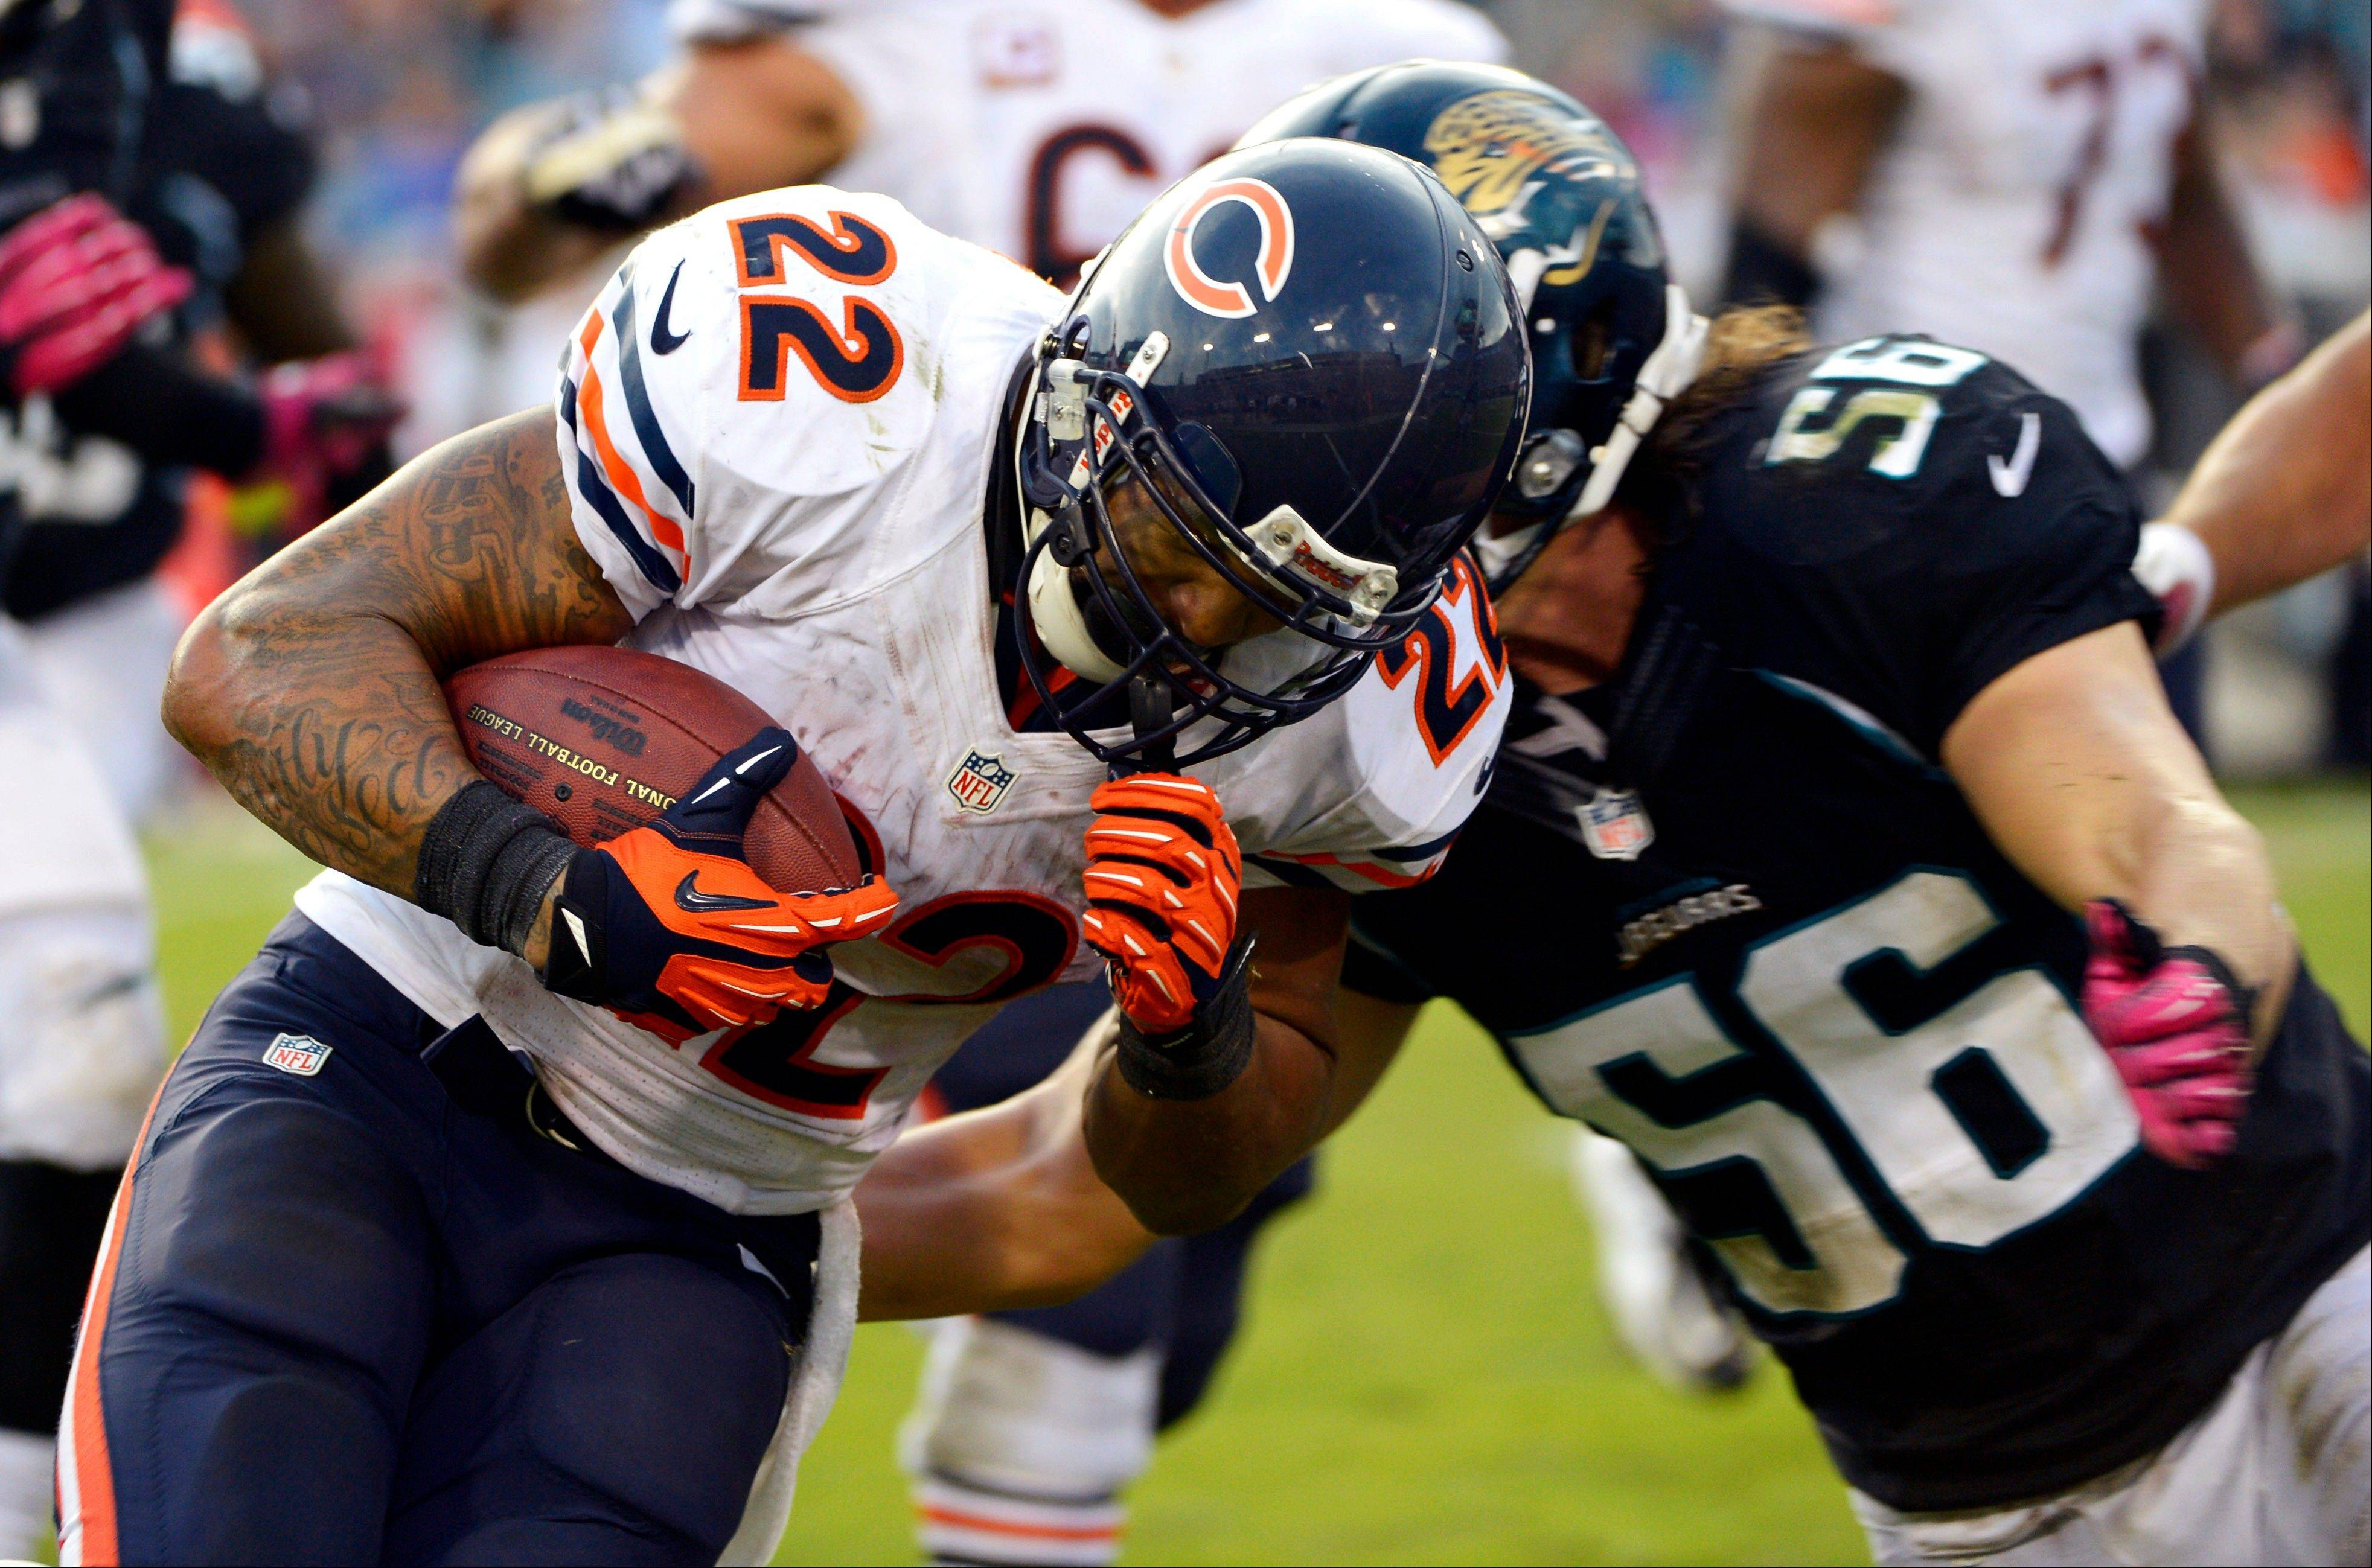 Running back Matt Forte rushed for 107 yards on 22 carries in Sunday's victory over the Jaguars. The Bears finished with 214 yards on the ground.